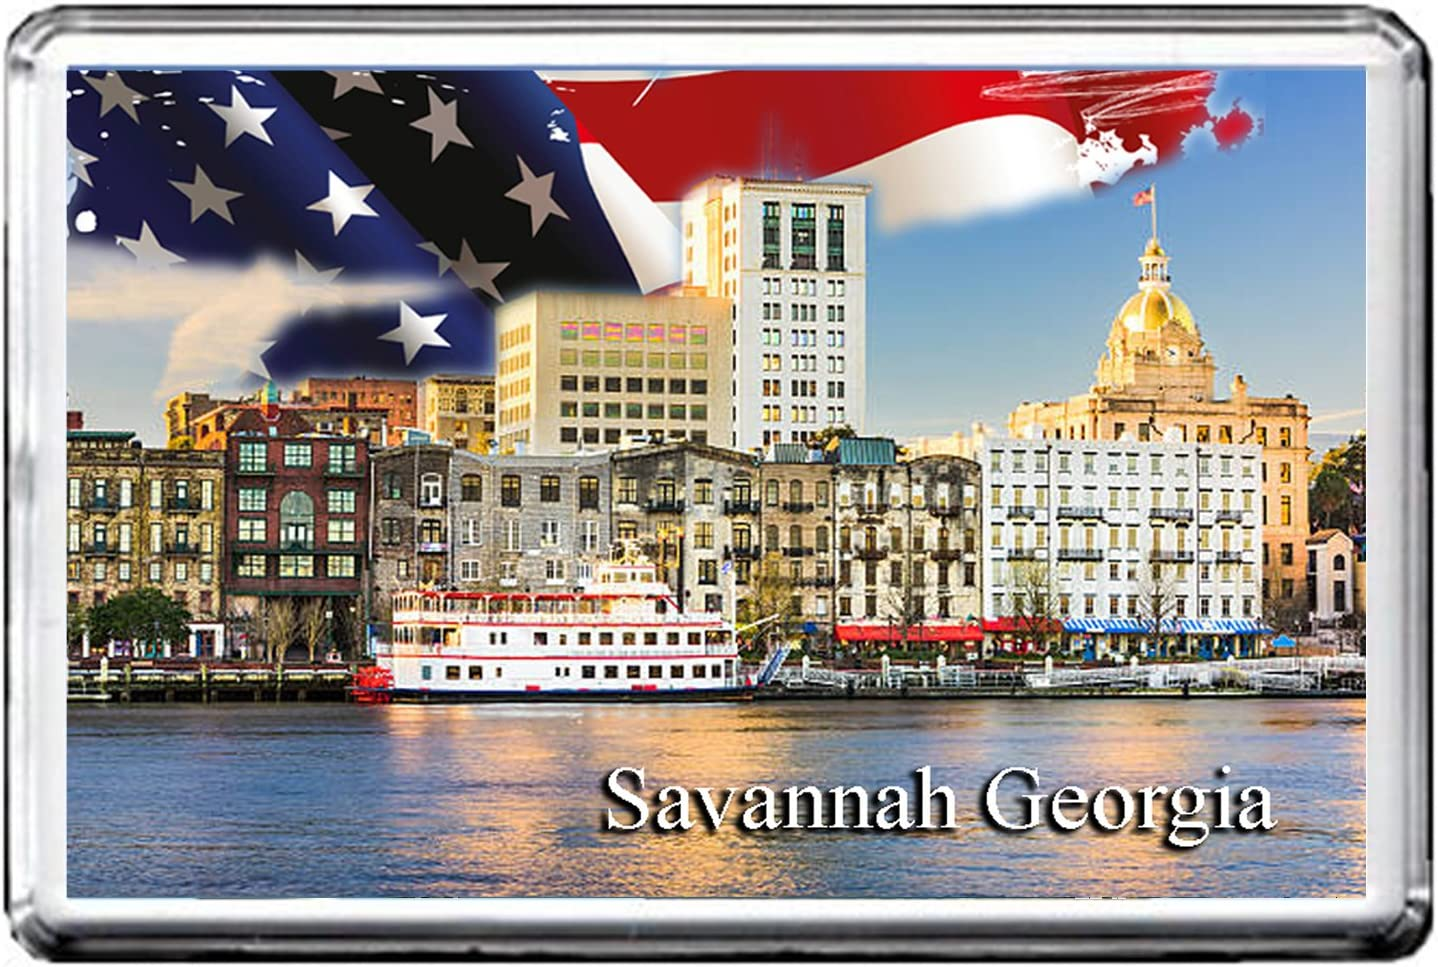 GIFTSCITY SAVANNAH, GEORGIA FRIDGE MAGNET THE CITY OF UNITED STATES REFRIGERATOR MAGNET